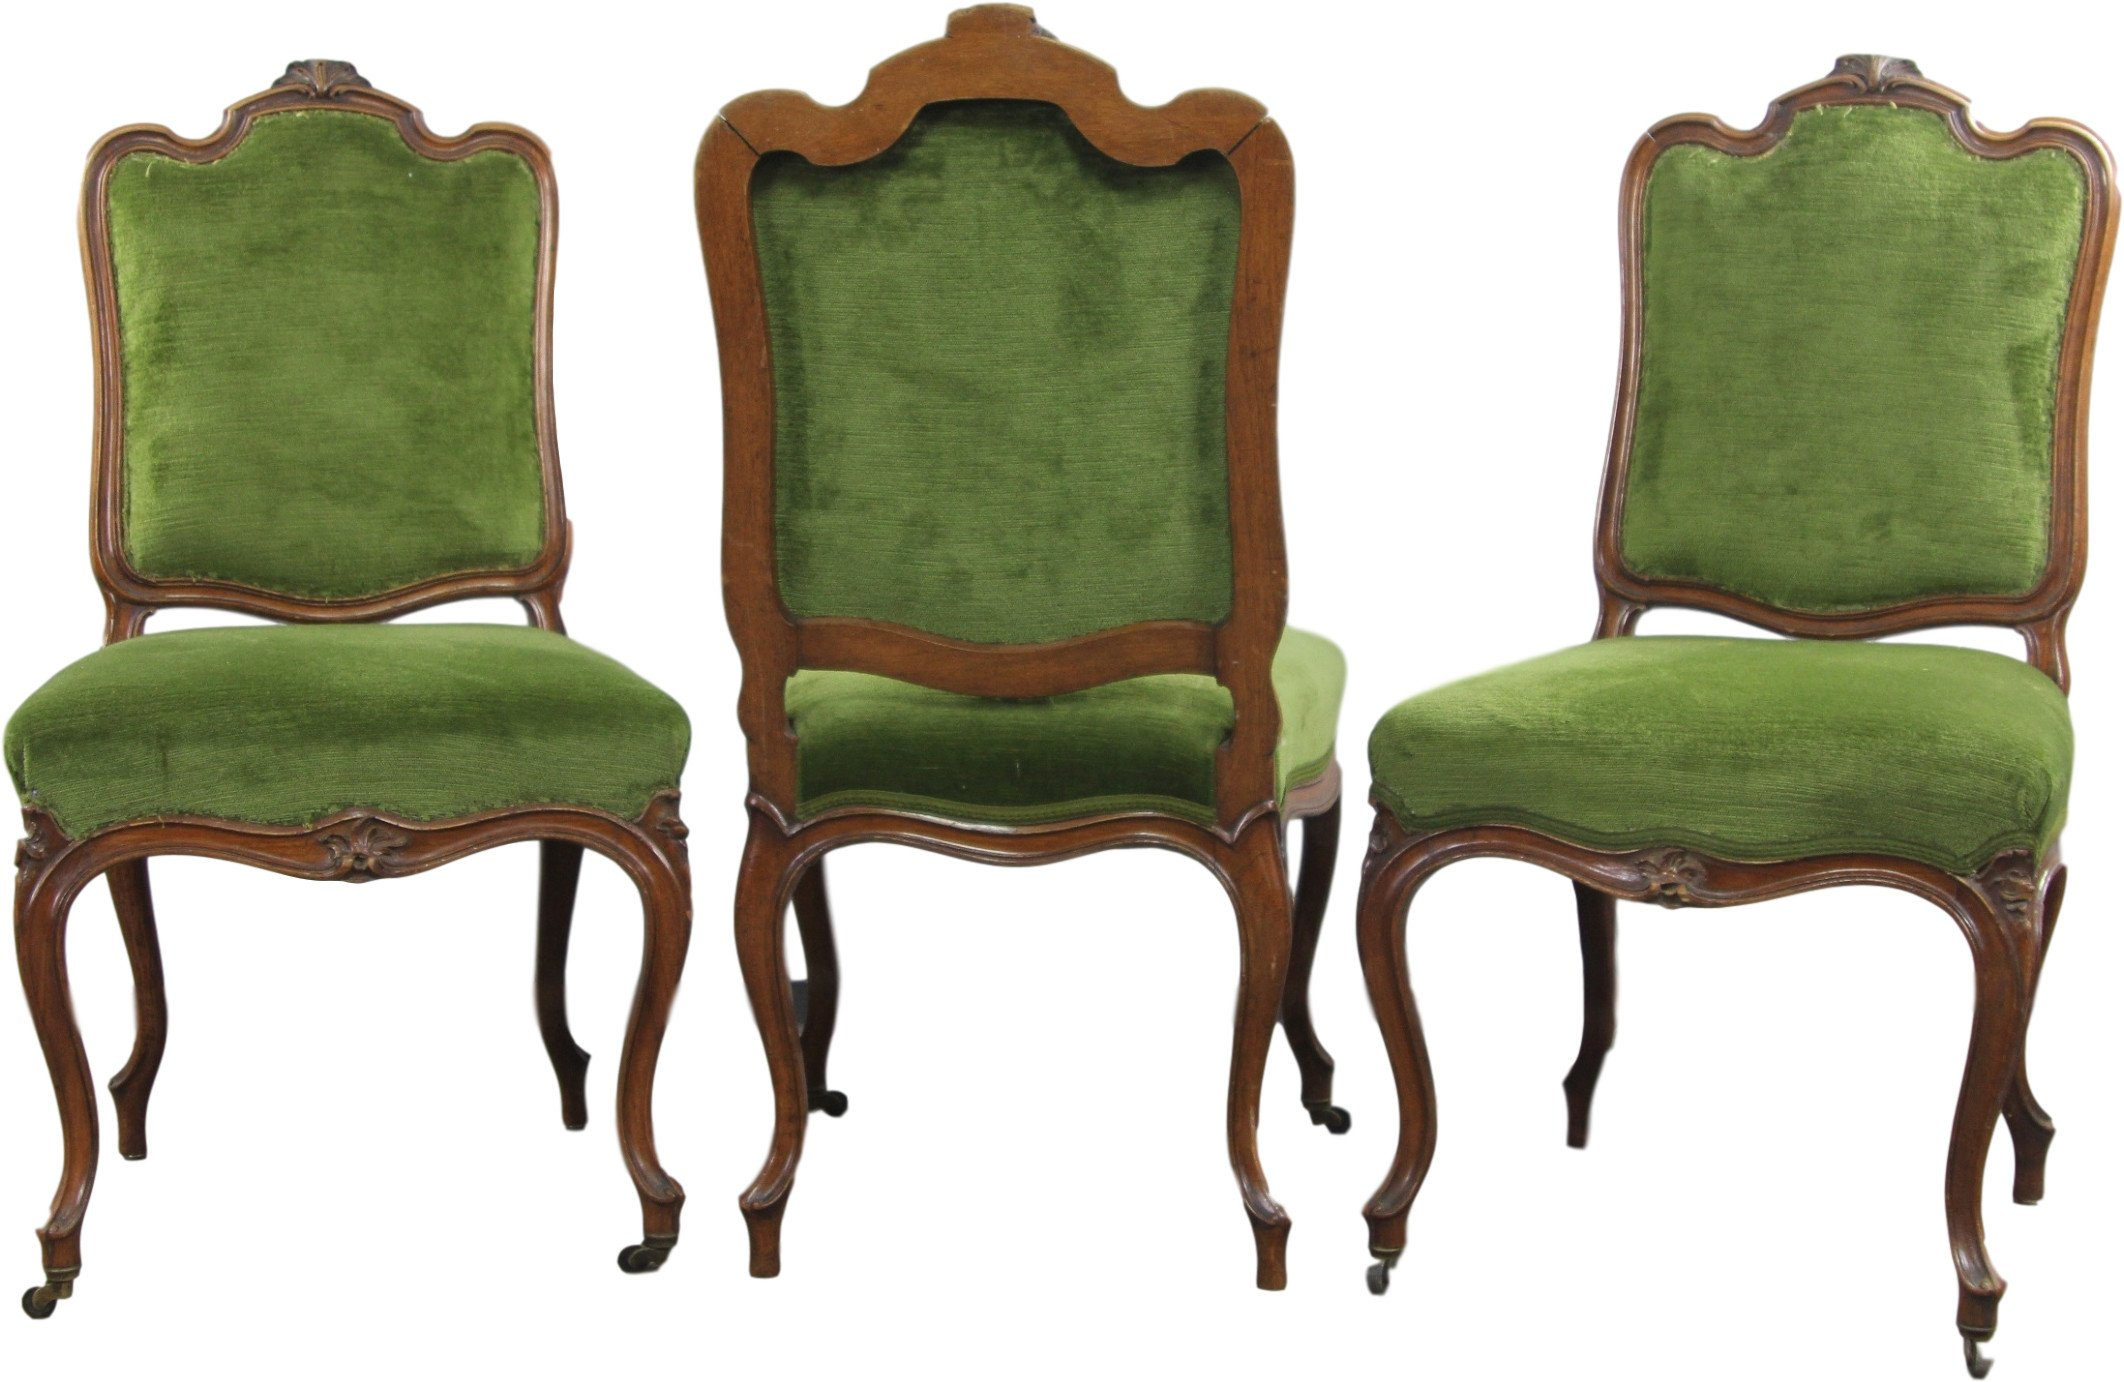 Set of Three Chairs, early 20th C.